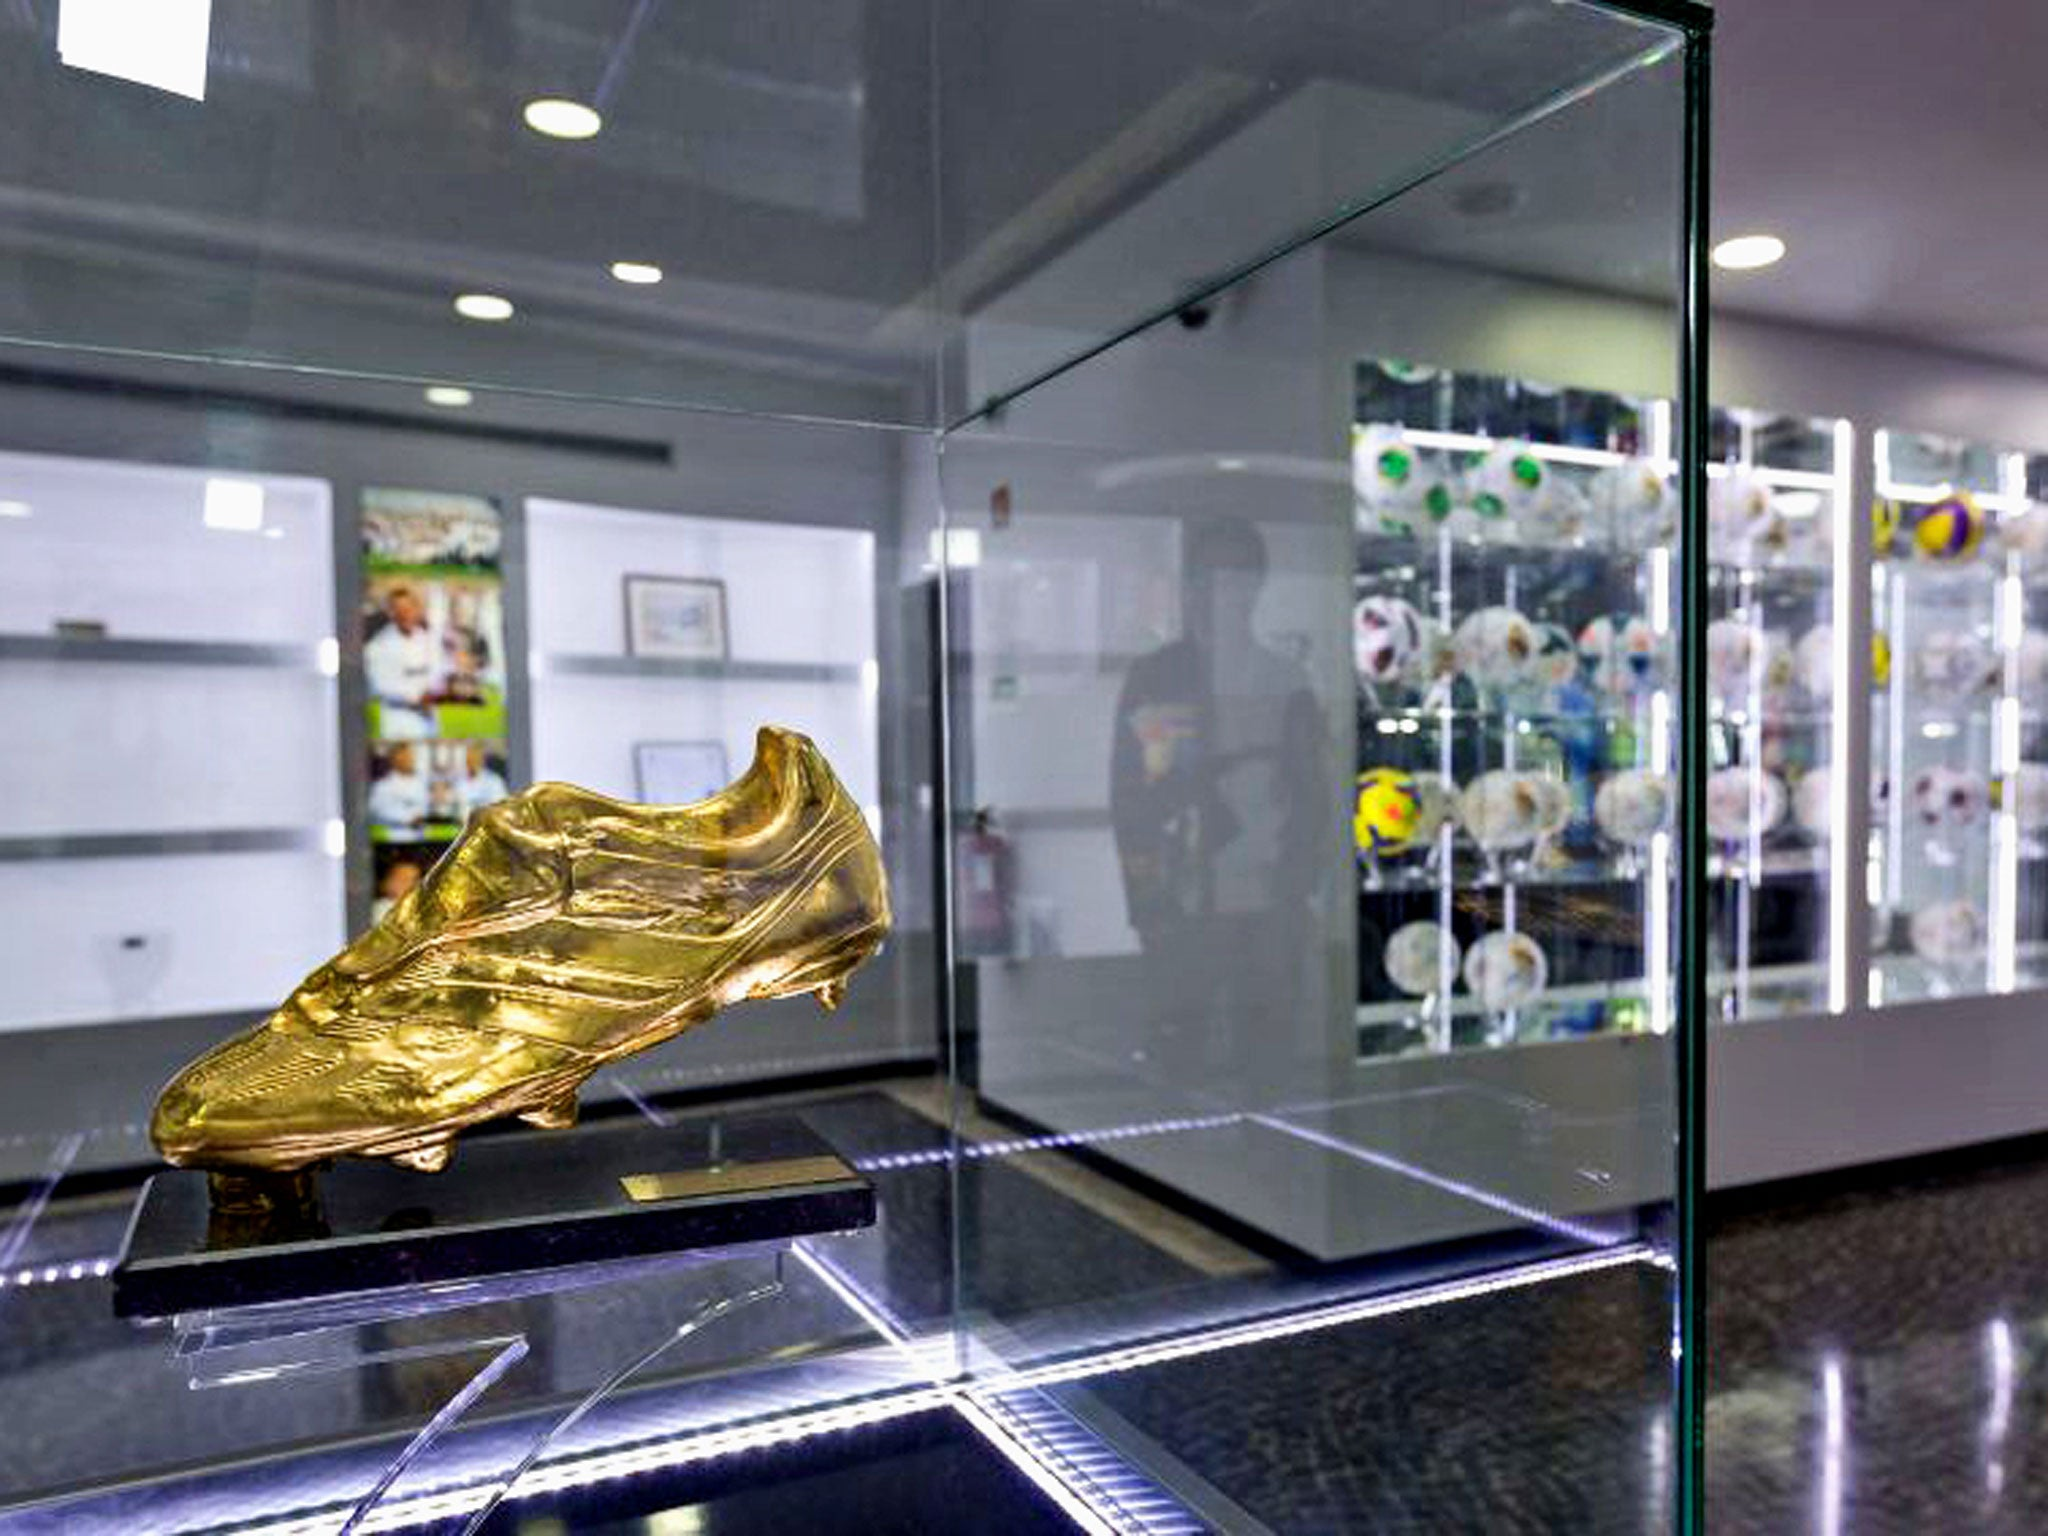 The Golden Boot Trophy